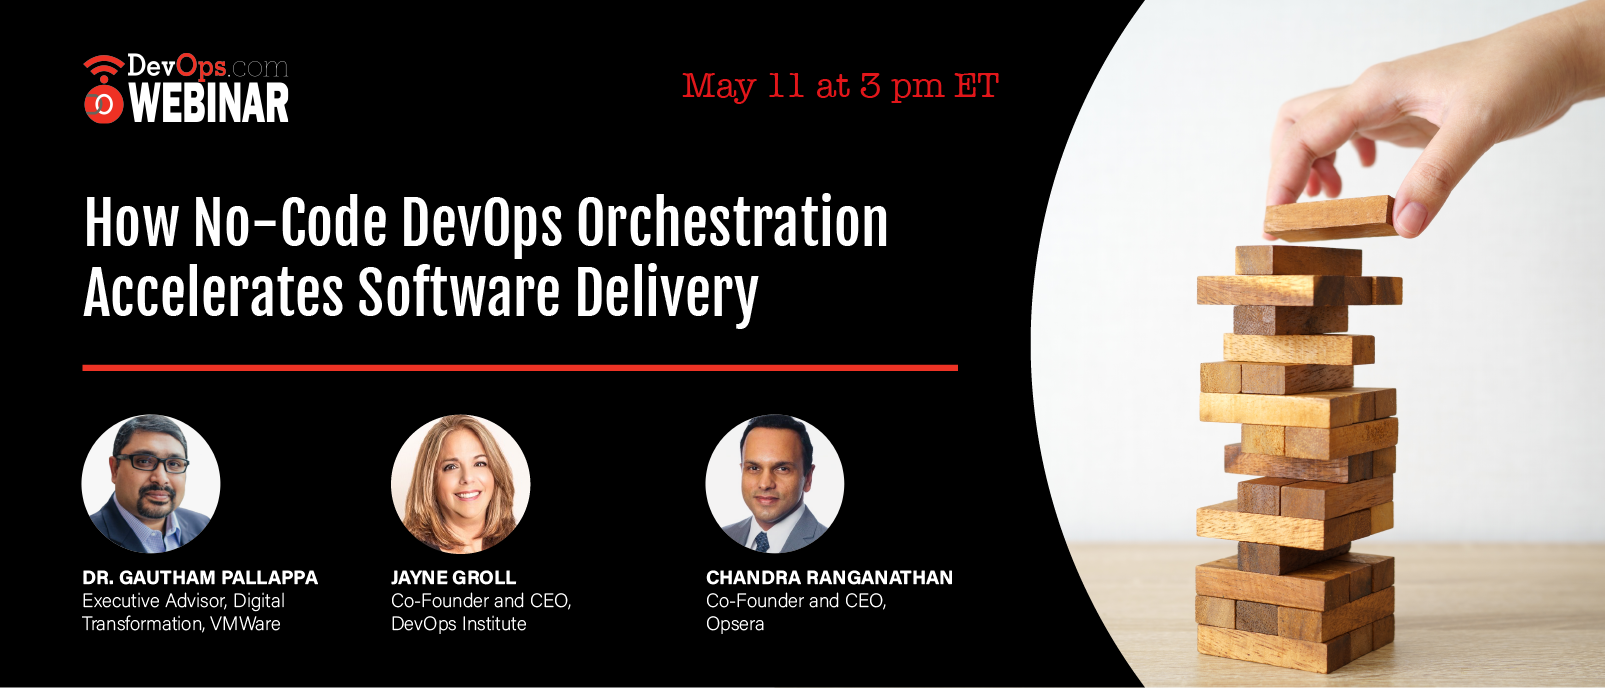 How No-Code DevOps Orchestration Accelerates Software Delivery